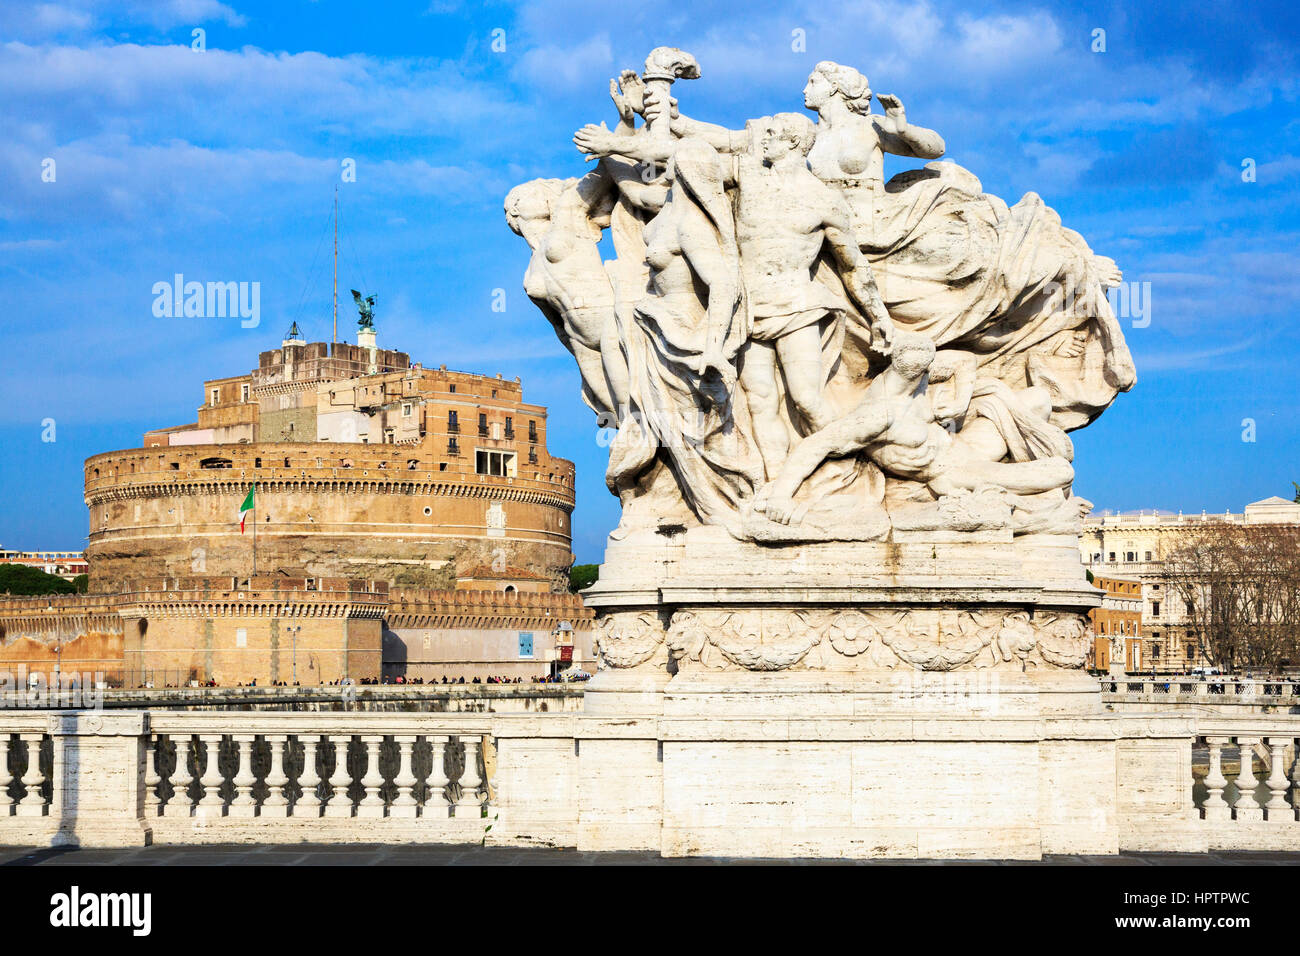 Castel Sant Angelo viewed from the Ponte Vittorio Emanuelle bridge, Parco Adriano district, Rome, Italy - Stock Image